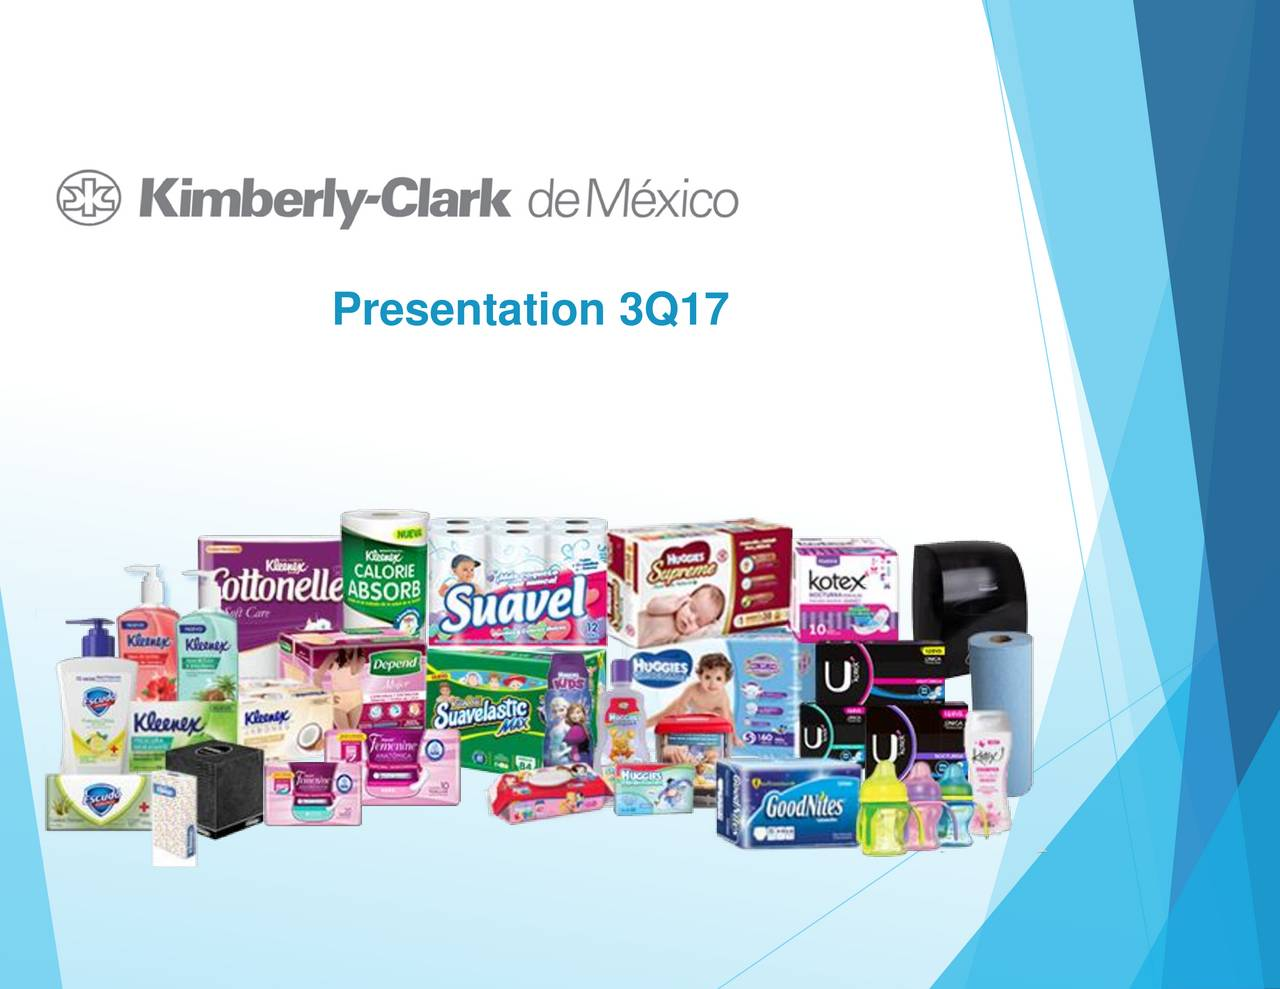 Earnings Disclaimer >> Kimberly-Clark de Mexico, S.A. de C.V. ADR 2017 Q3 - Results - Earnings Call Slides - Kimberly ...